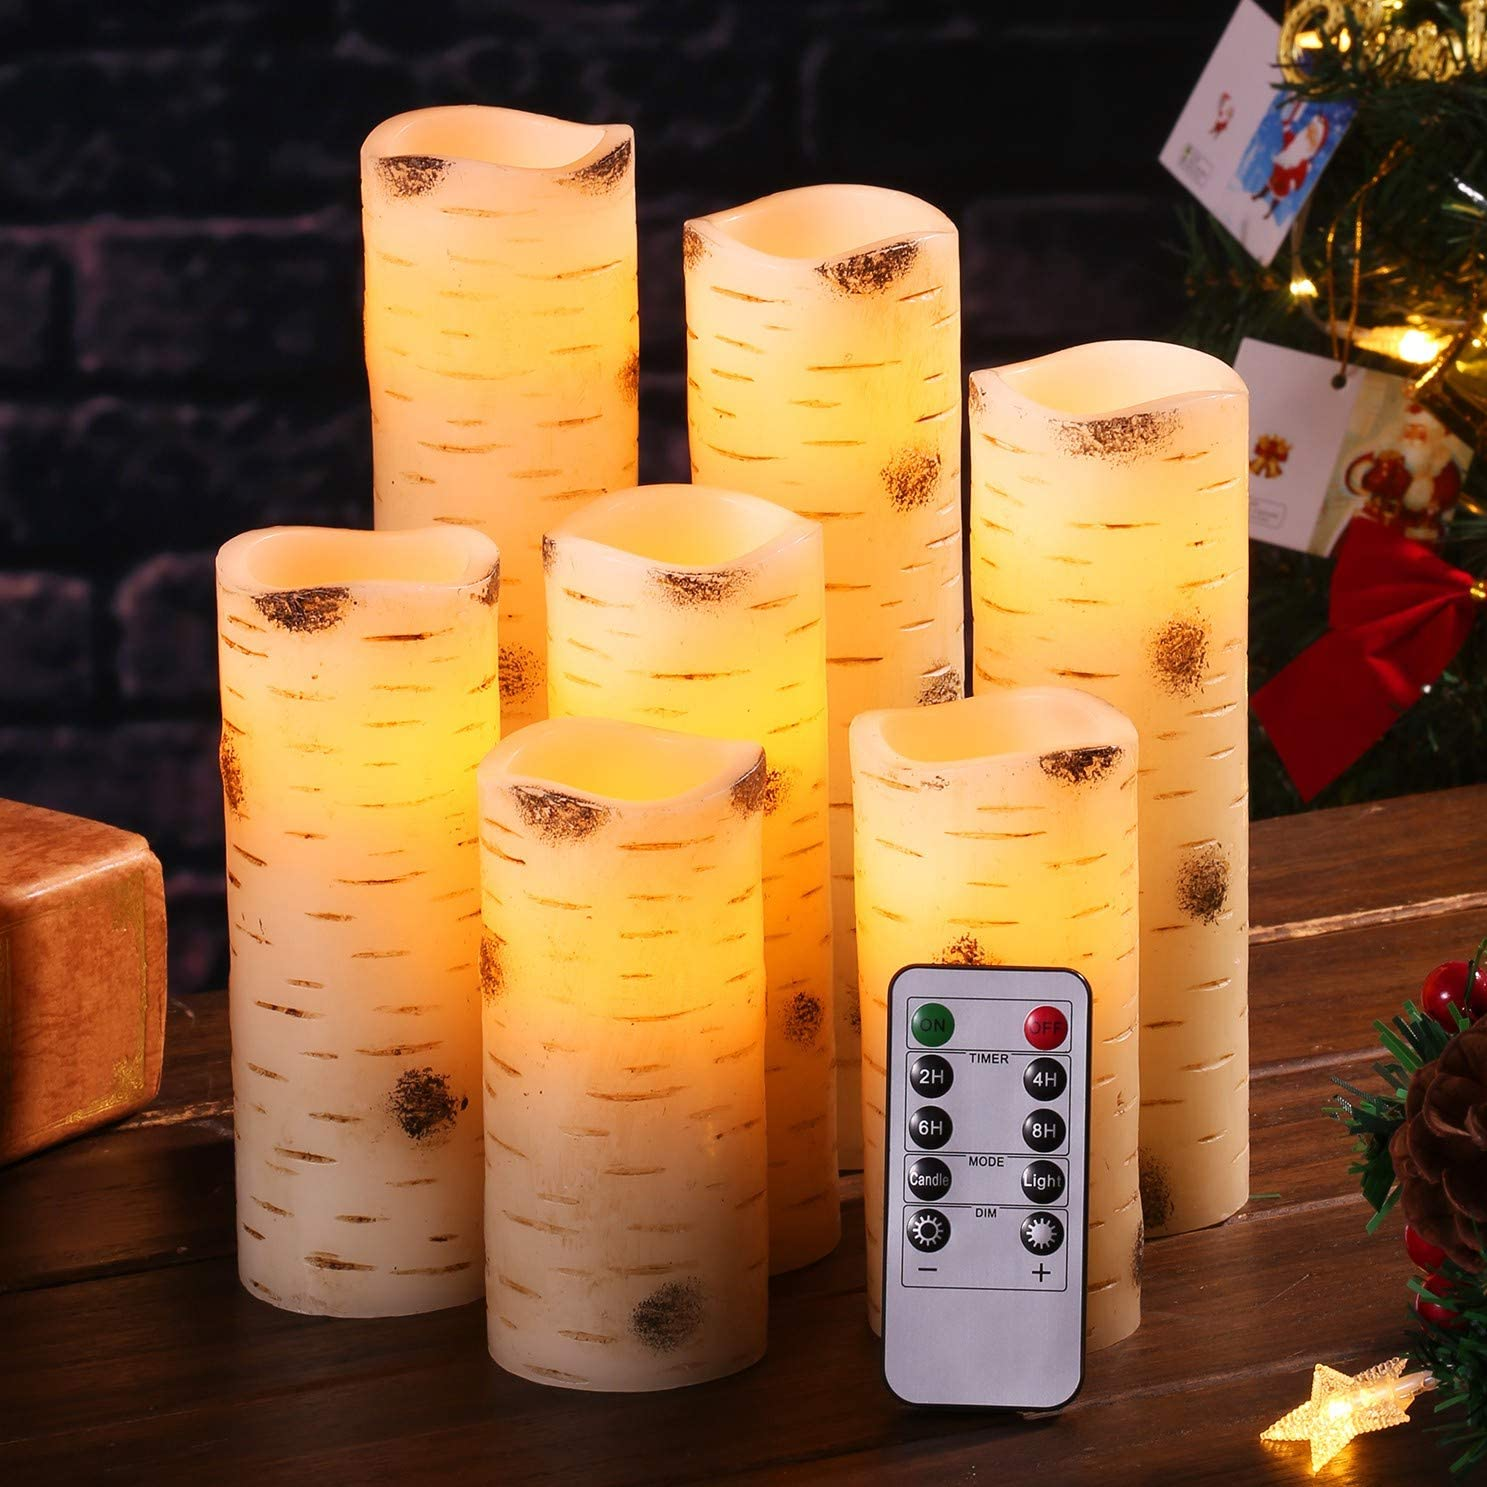 Flameless Candles Flickering LED Candles Birch Bark Effect Set of 7 D 2.2 X H 5 5 6 6 7 8 9 Ivory Real Wax Pillar Battery Operated Candles with 10-Key Remote Control and Cycling 24 Hours Timer